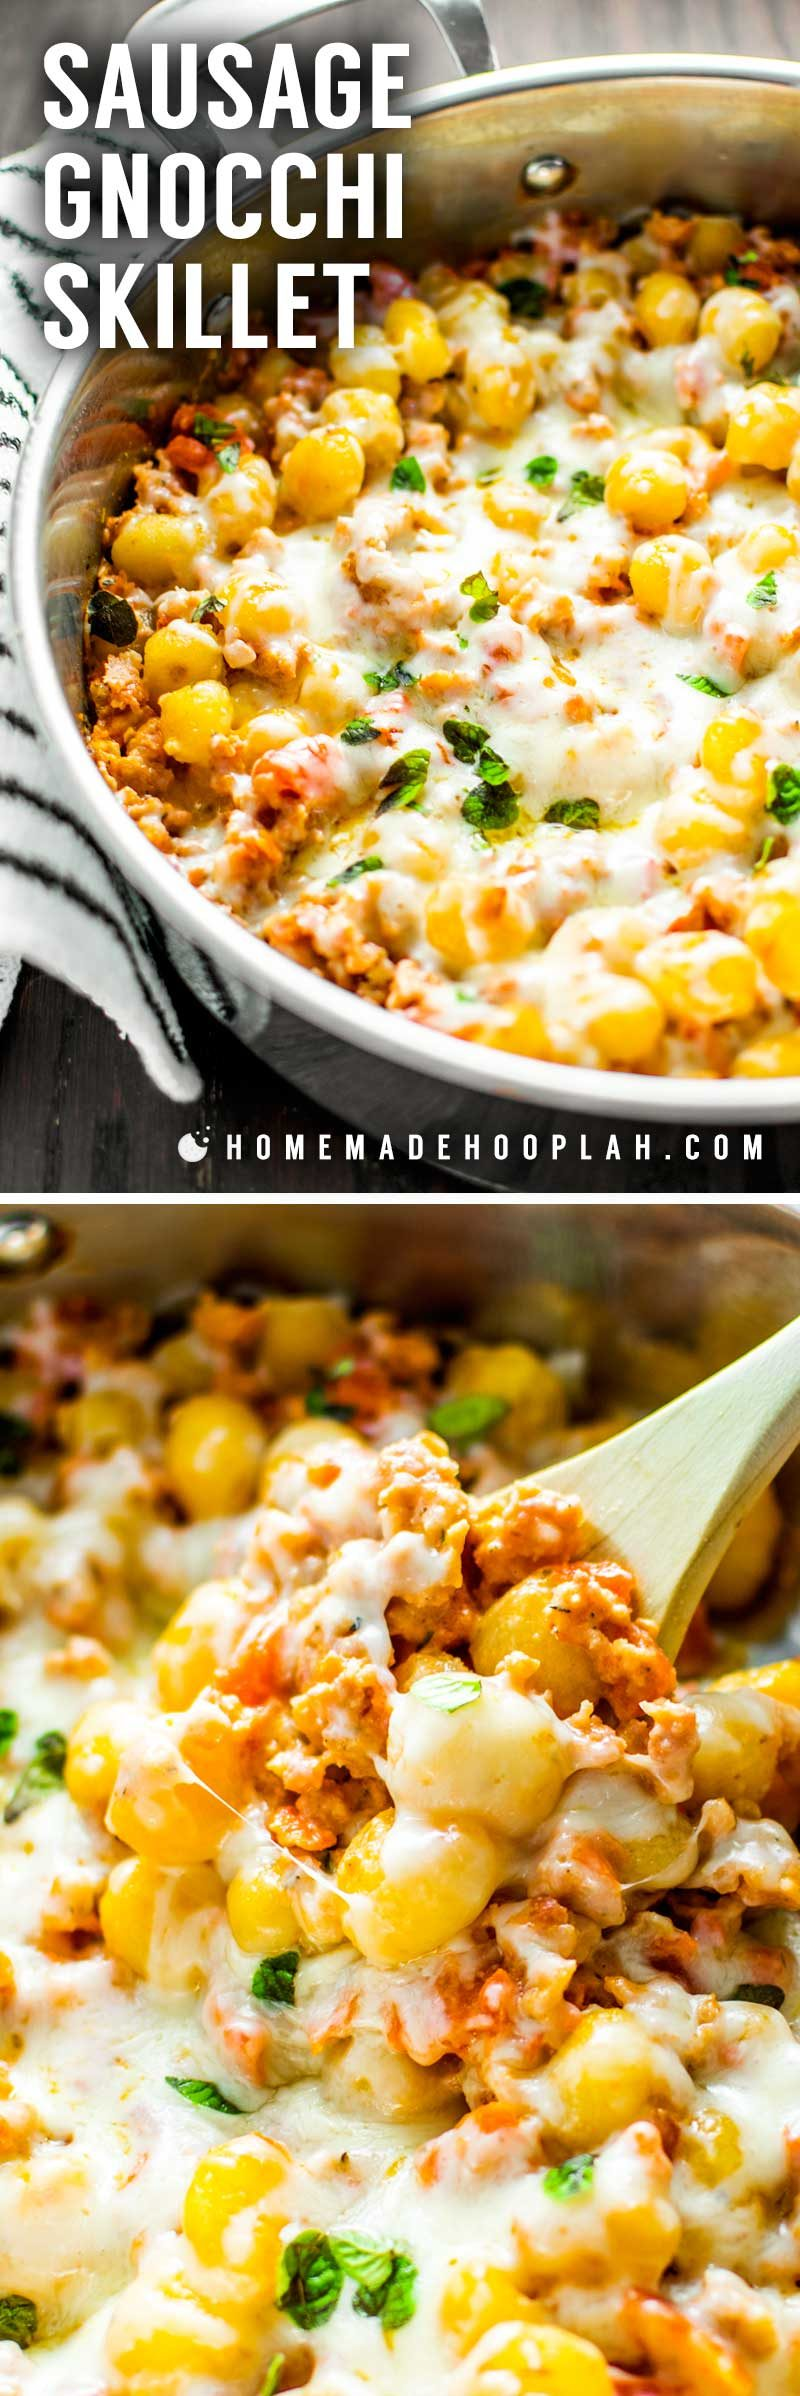 Sausage Gnocchi Skillet! Cheesy sausage gnocchi on a bed of tomato and garlic, cooked all in one pan - the perfect no-hassle meal for breakfast, lunch, or dinner. | HomemadeHooplah.com